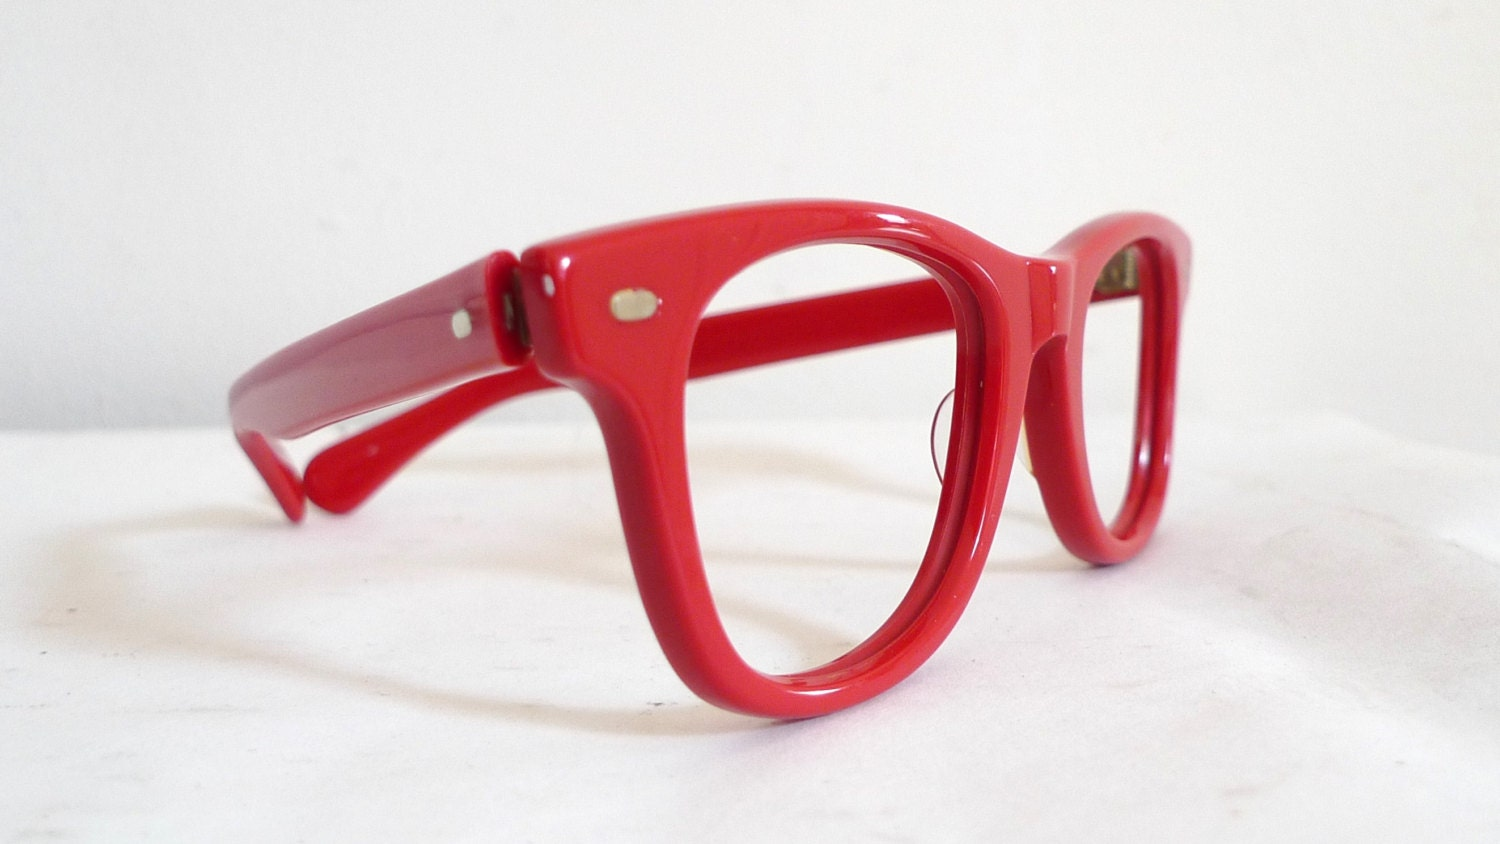 Eyeglass Frames Made In The Usa : True Vintage Red Wayfarer-style USA Eyeglasses or Sunglasses